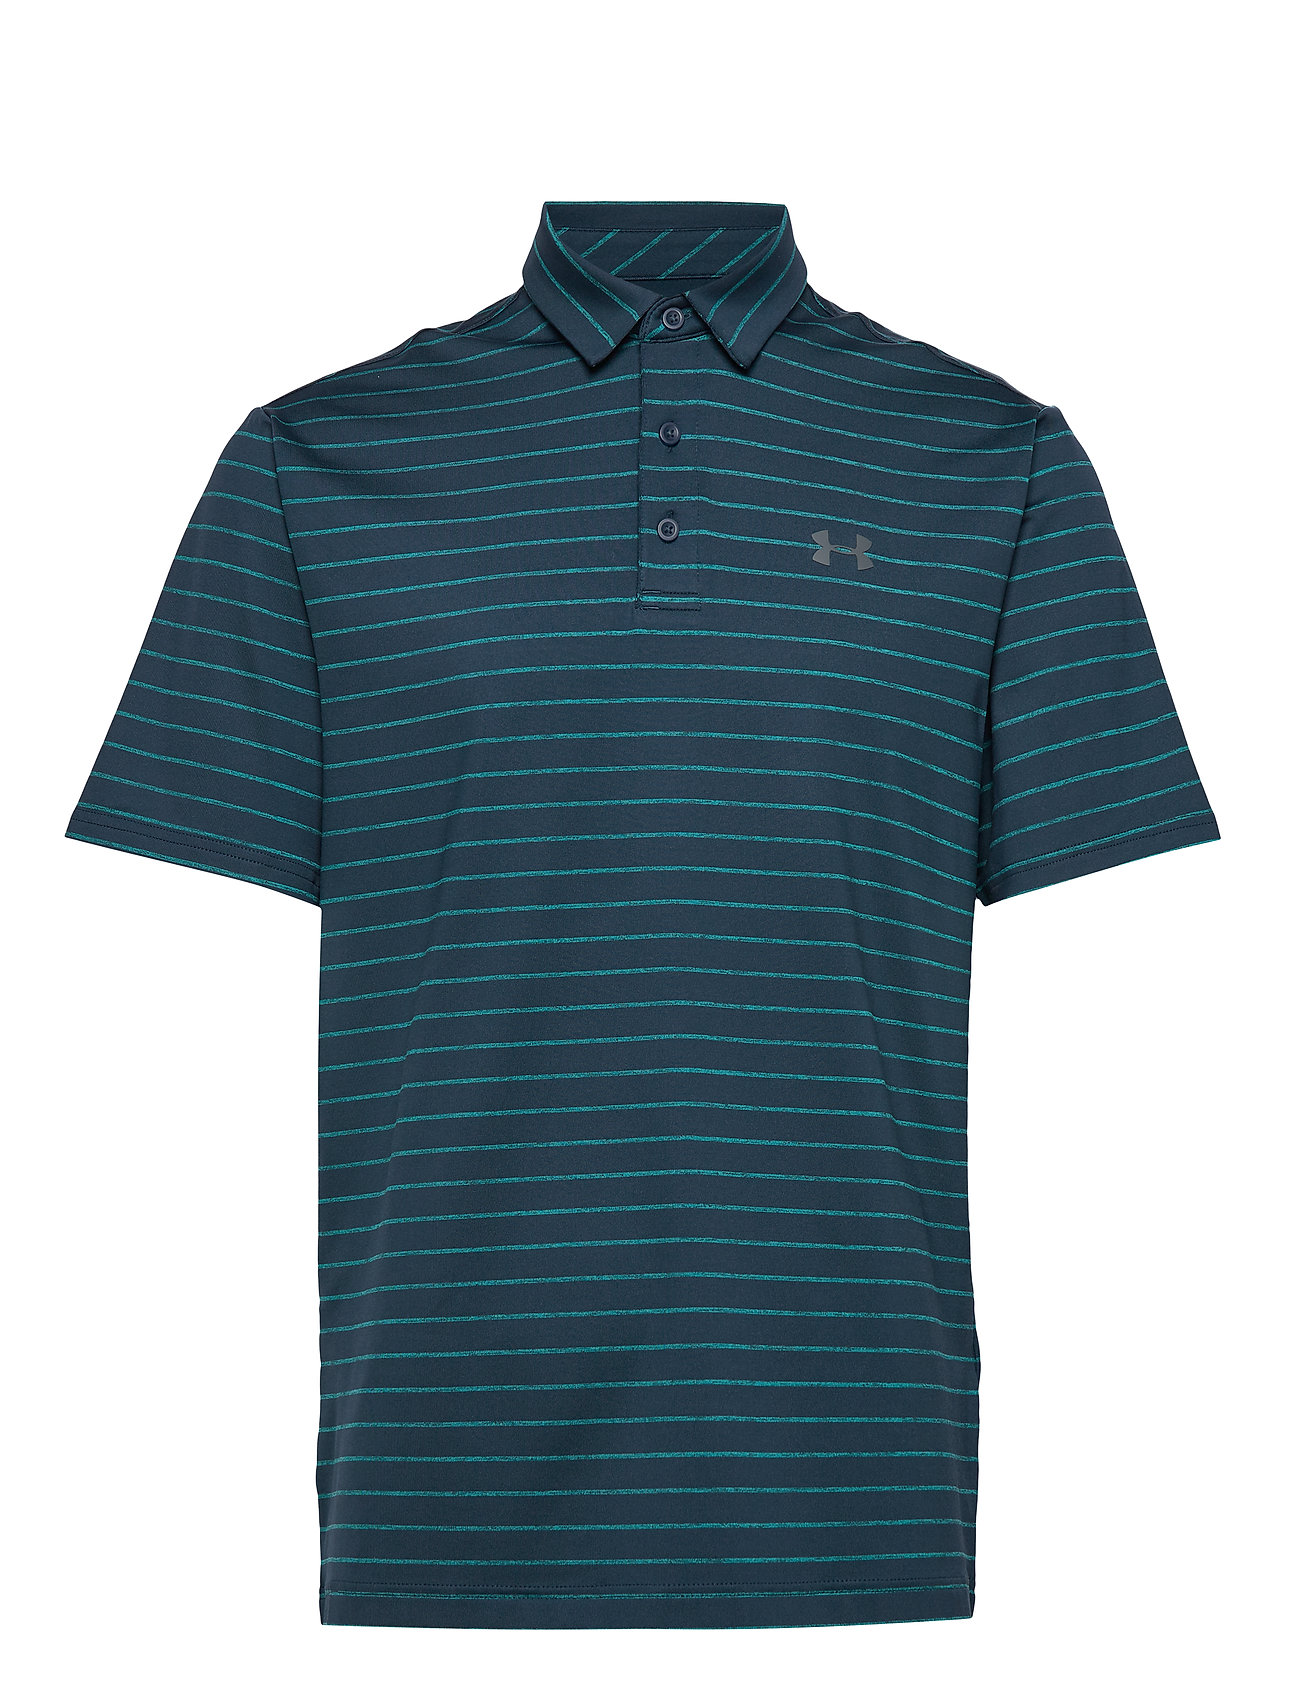 Under Armour Playoff Polo 2.0 - TANDEM TEAL